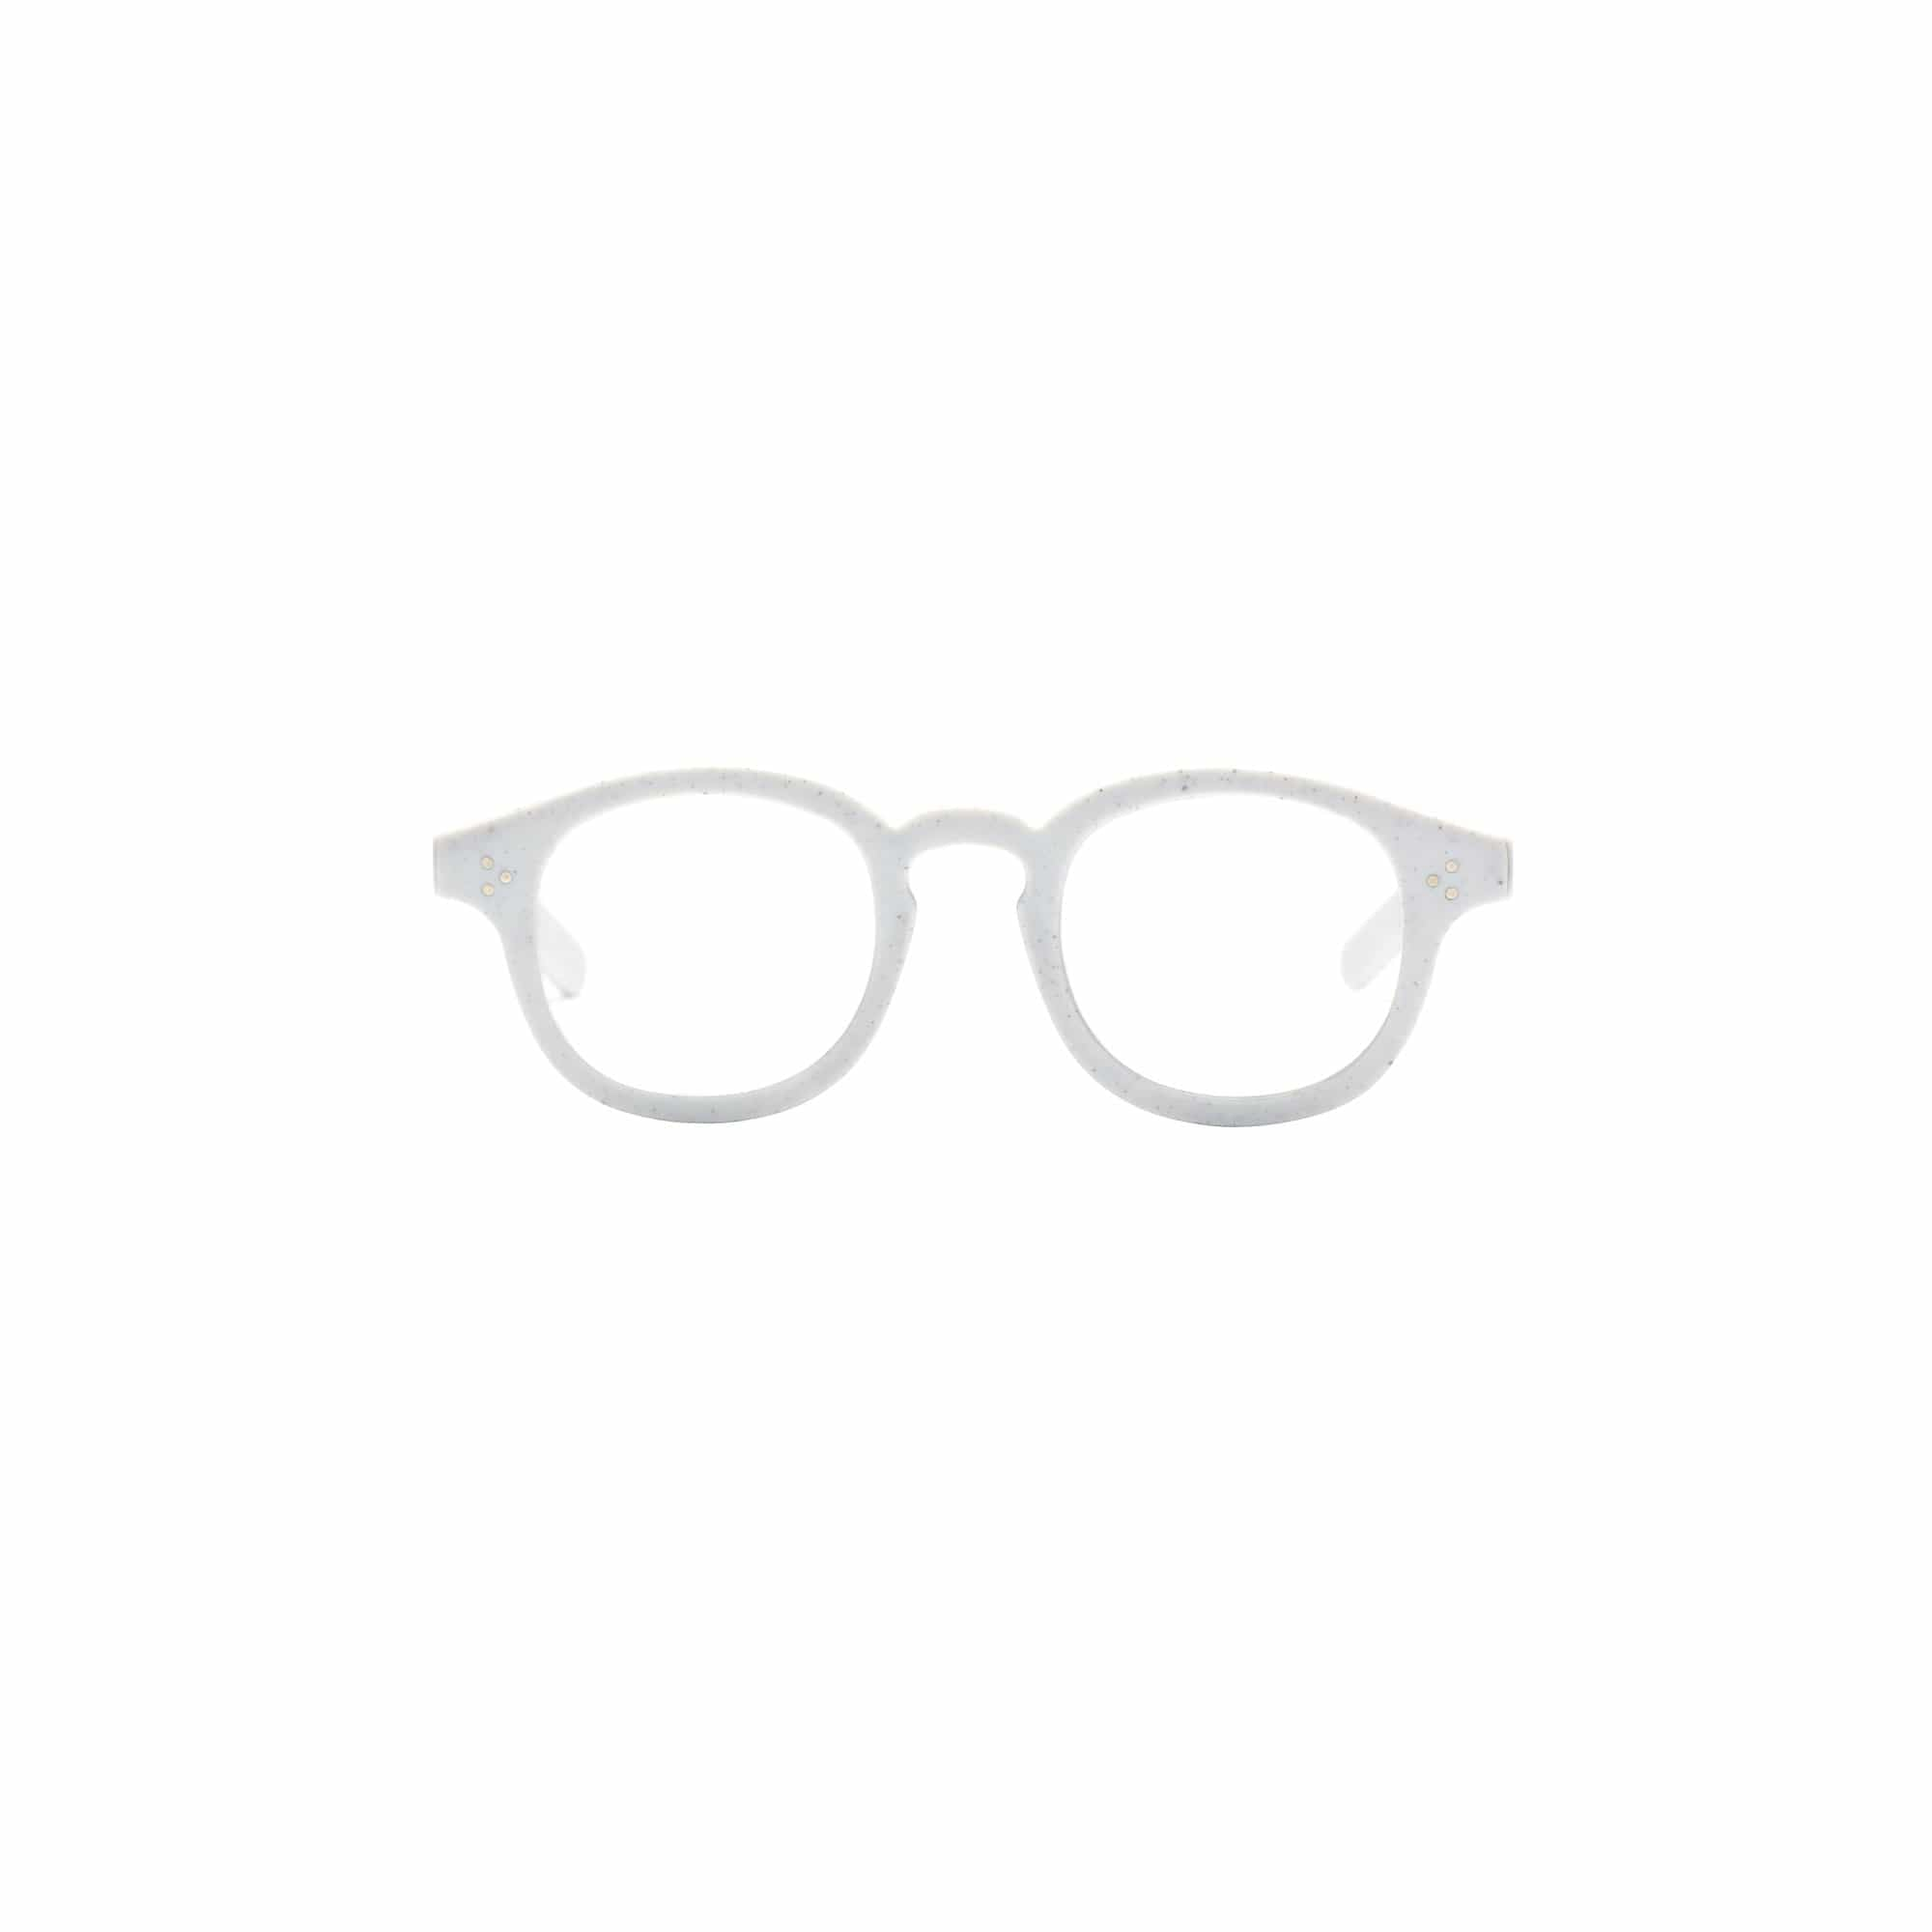 Genusee Sunglasses + Eyewear Roeper Cookies n' Cream Eyeglasses